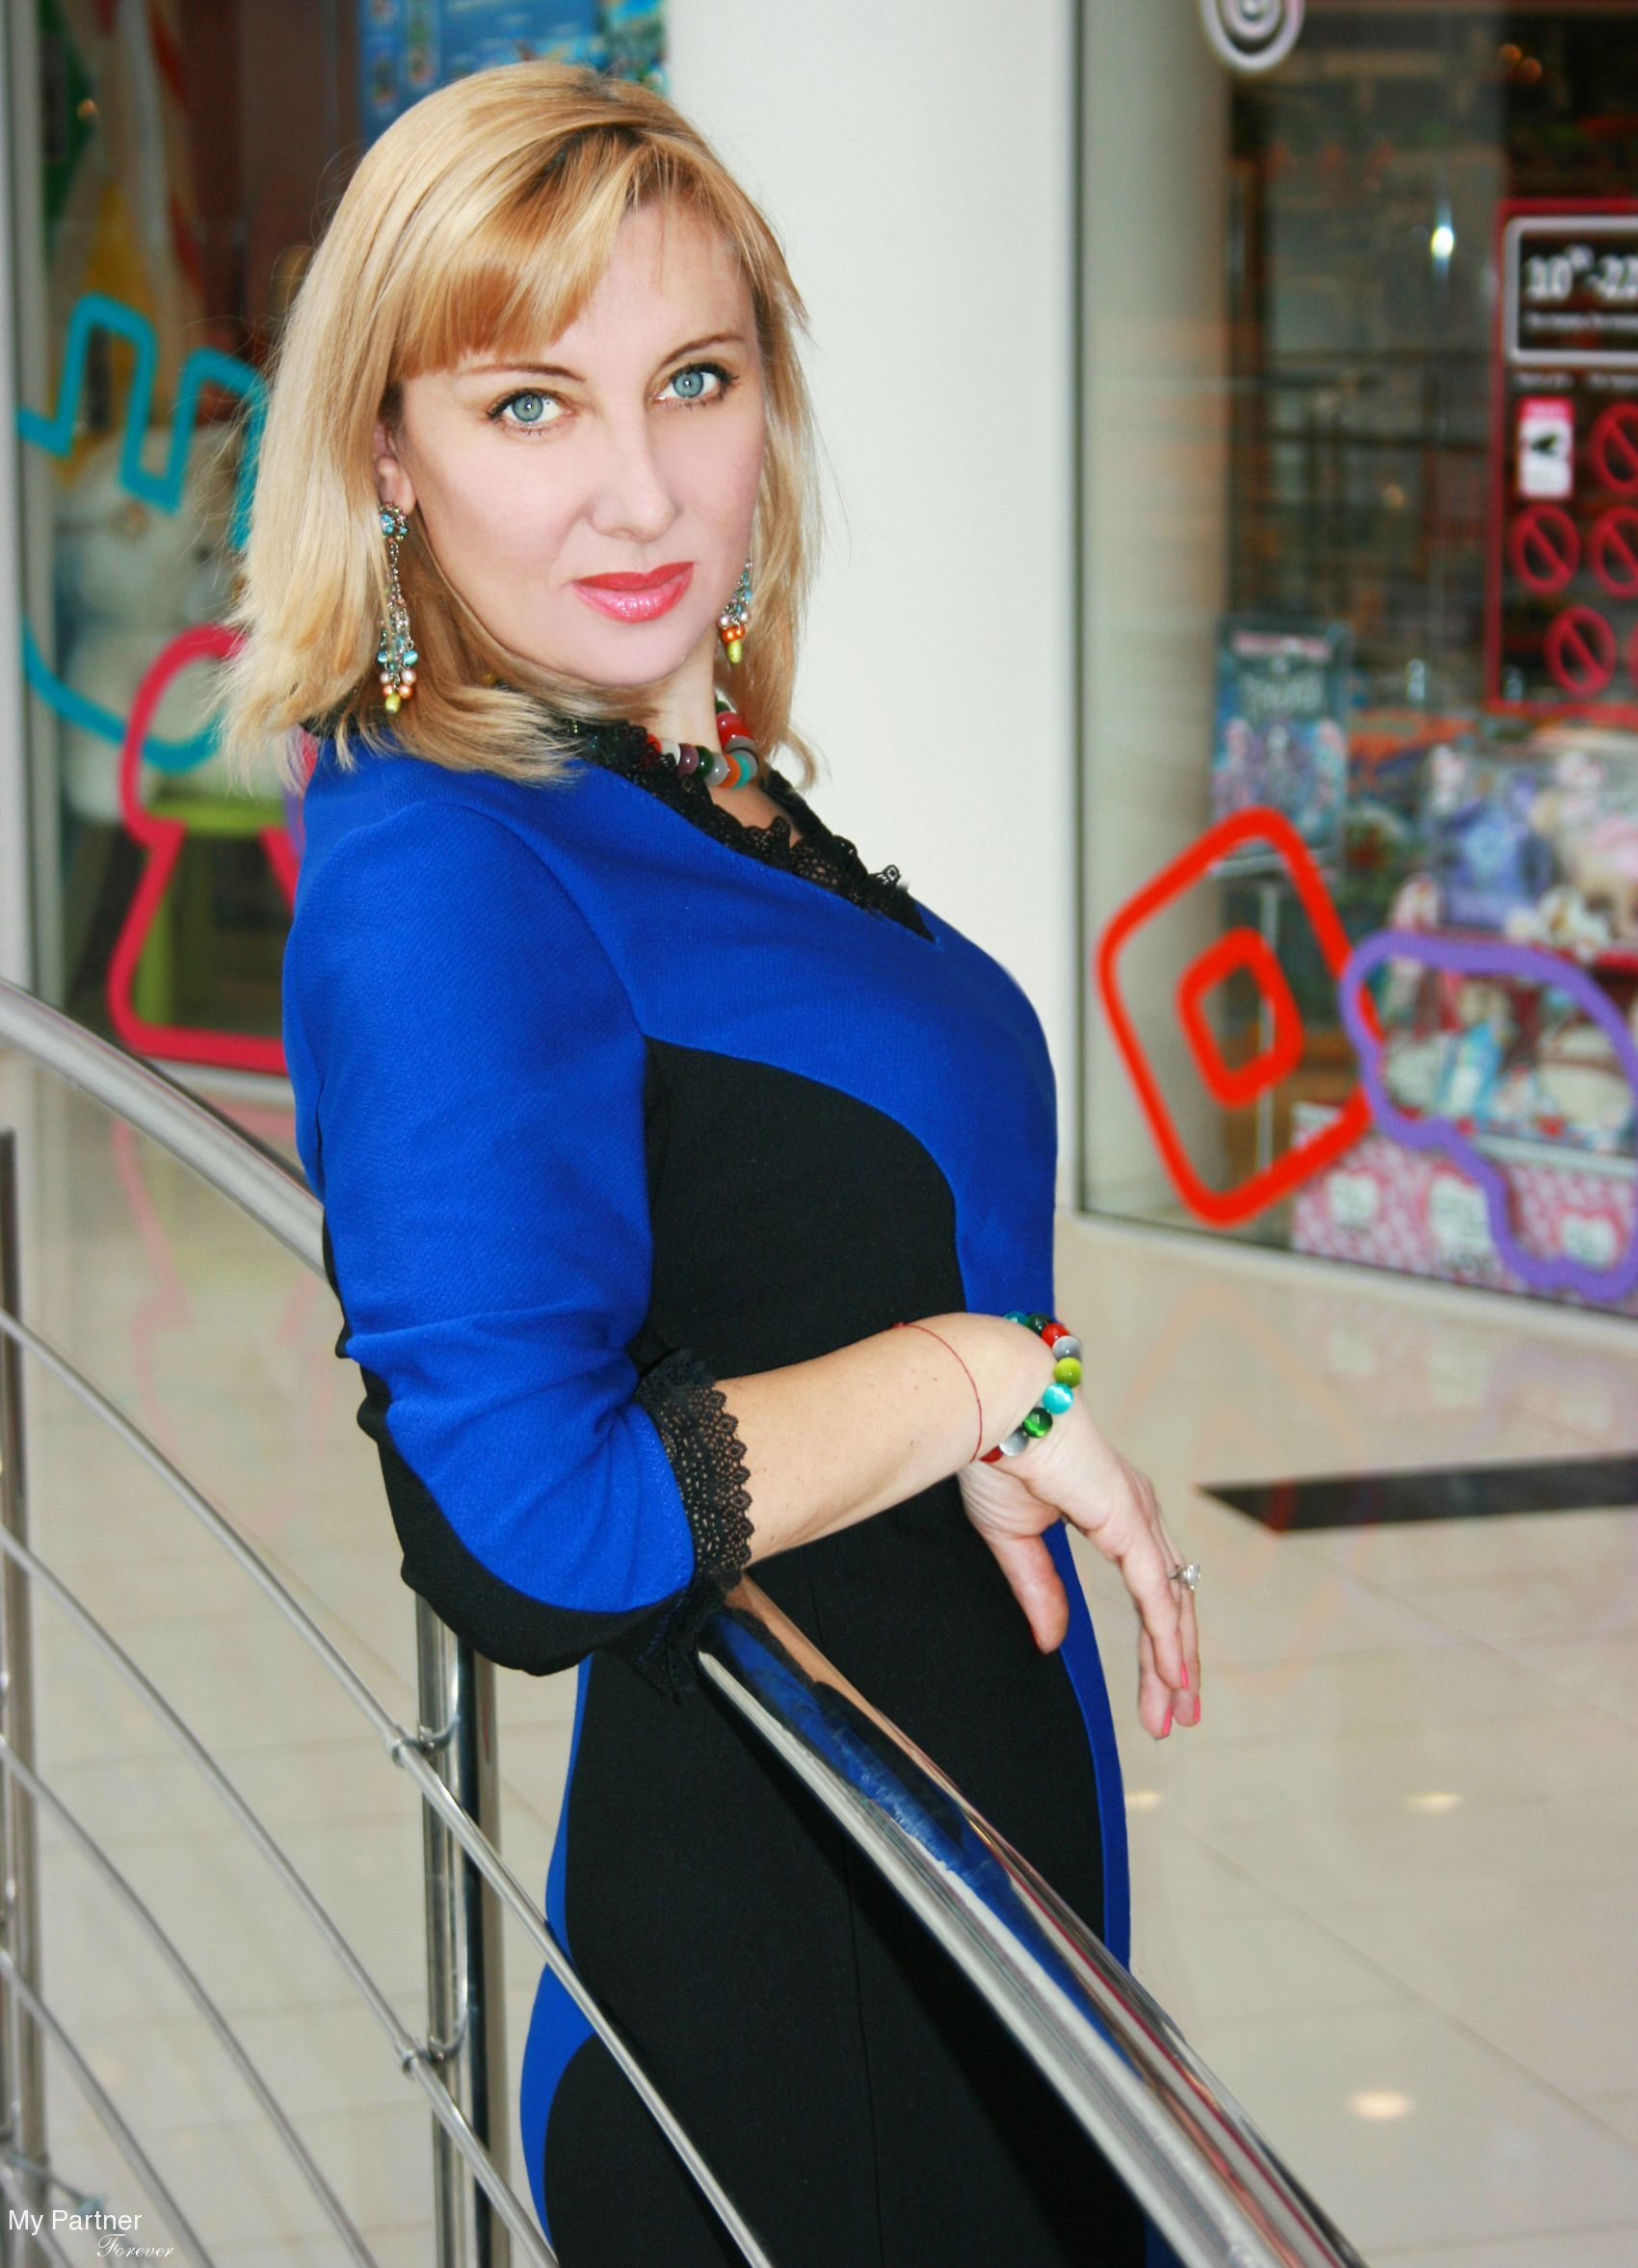 olga mature dating site Meet with single ukrainian women and girls who are seeking men for relationship & marriage at world's best dating site  and mature females  olga, 37 vika , 36.